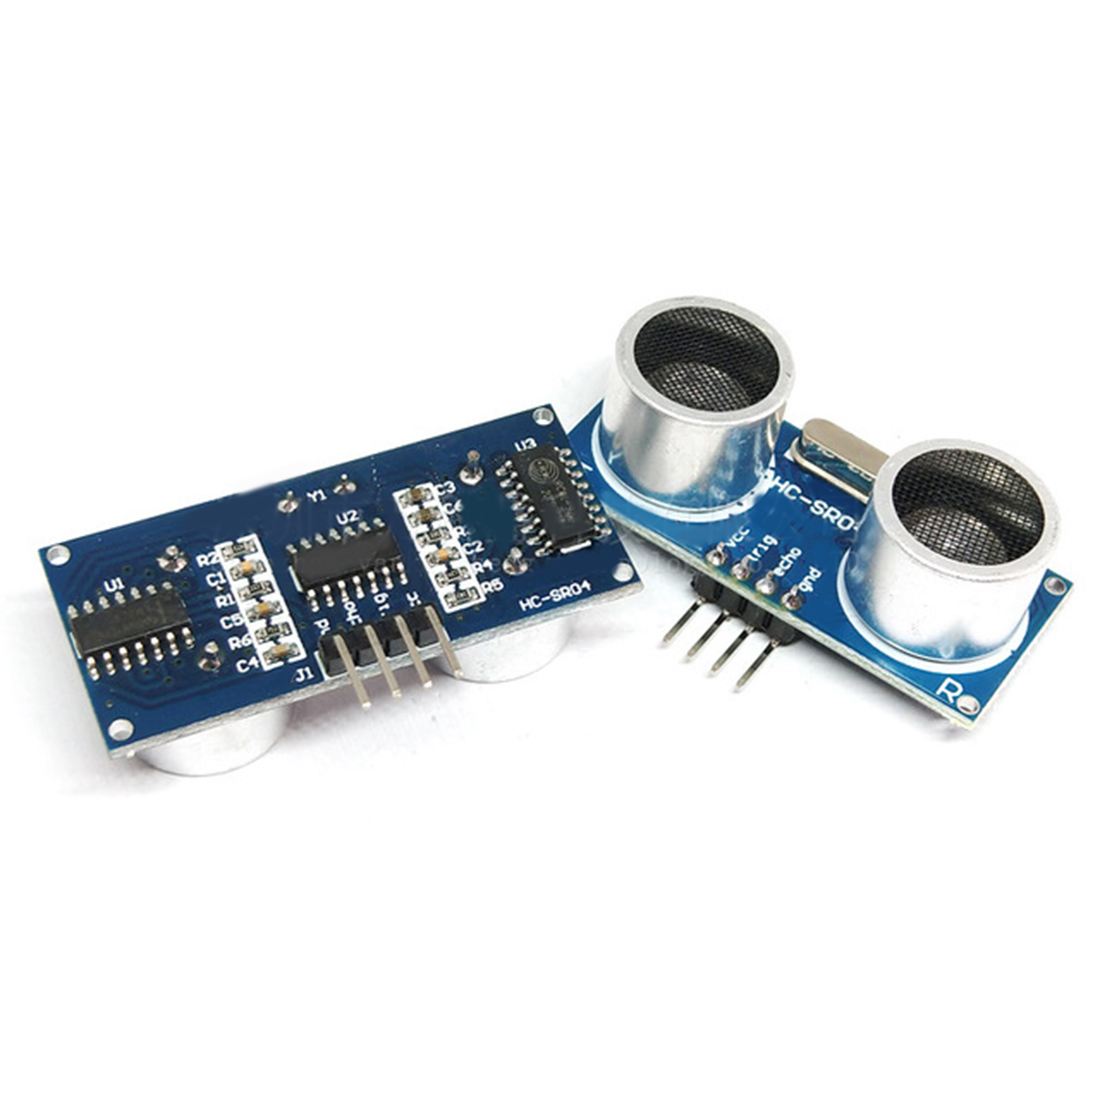 HC-SR04 Ultrasonic Module Ultrasonic Sensor Distance Measuring Transducer For DIY Programming Robot Car